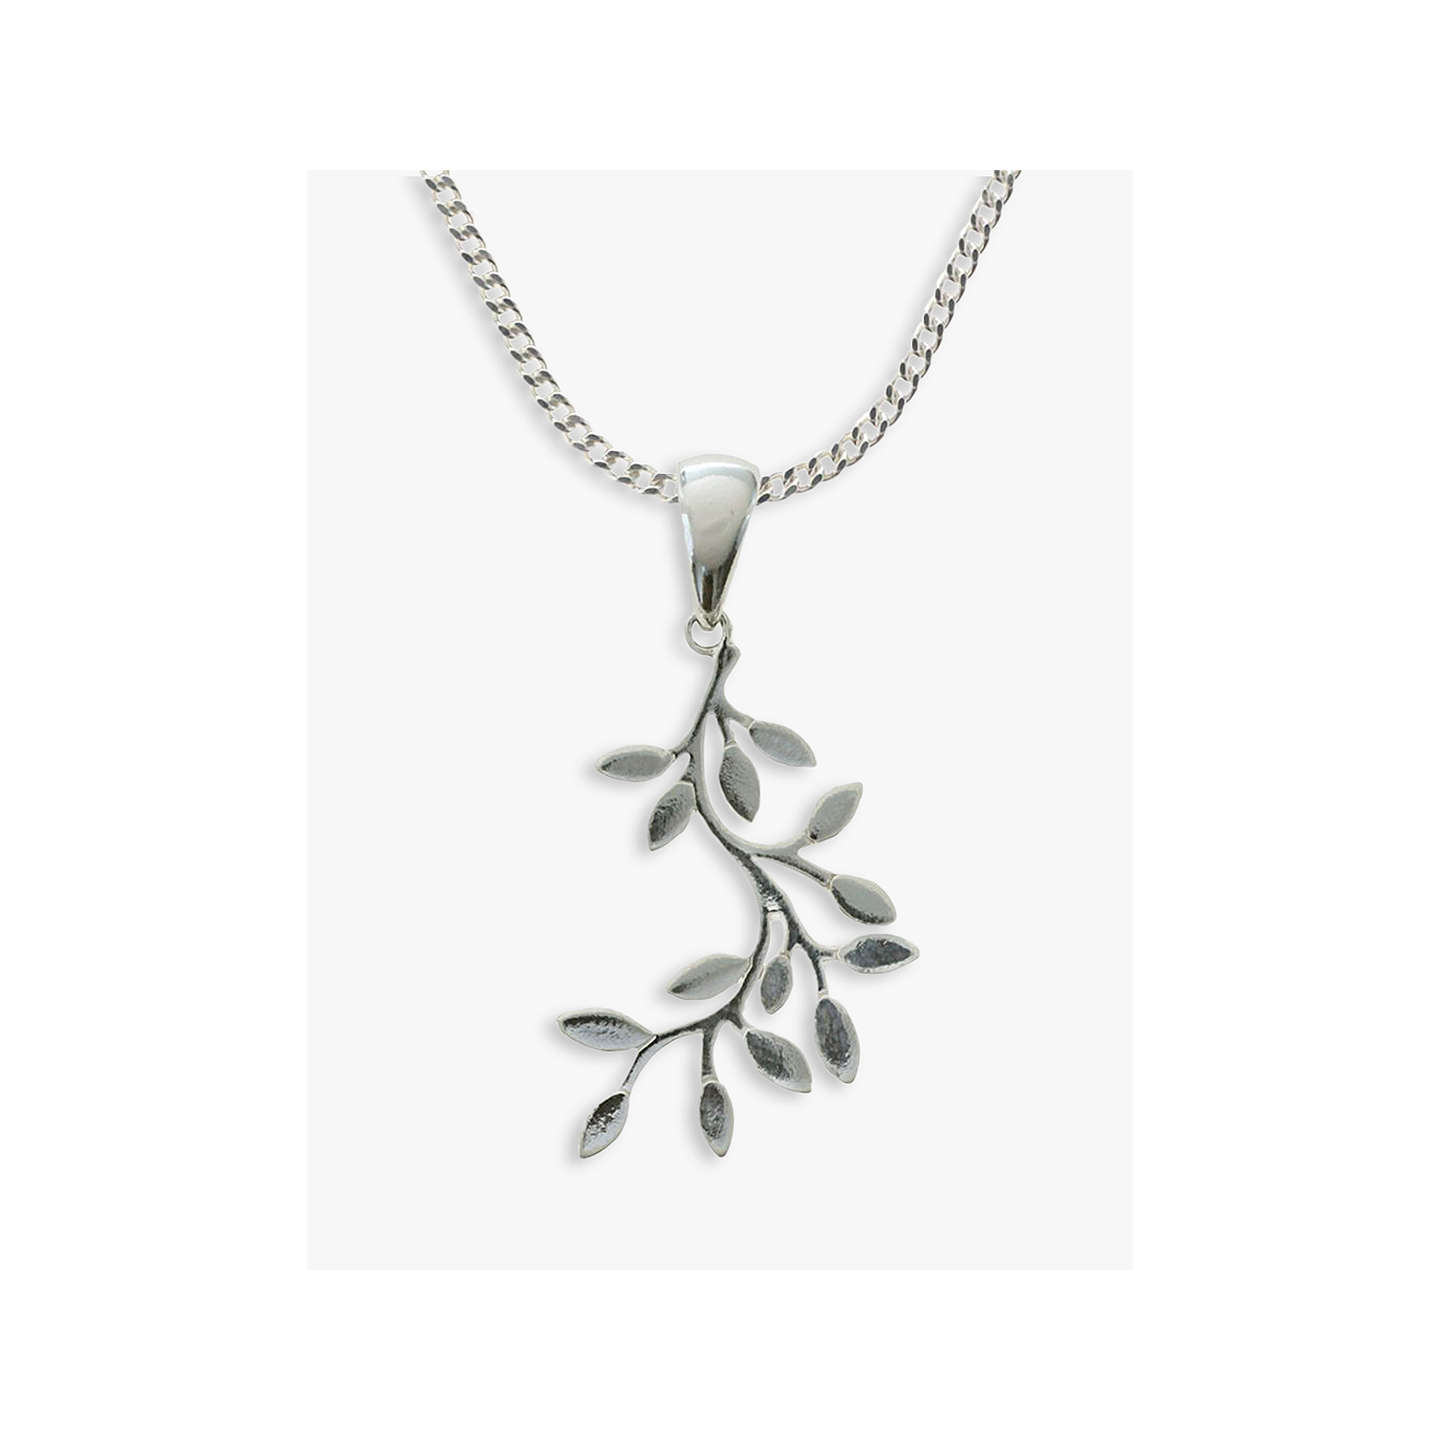 round charms wholesale party green jewelry necklace women girls theme plated product leaf accessoires pendant christmas shaped silver leaves fashion